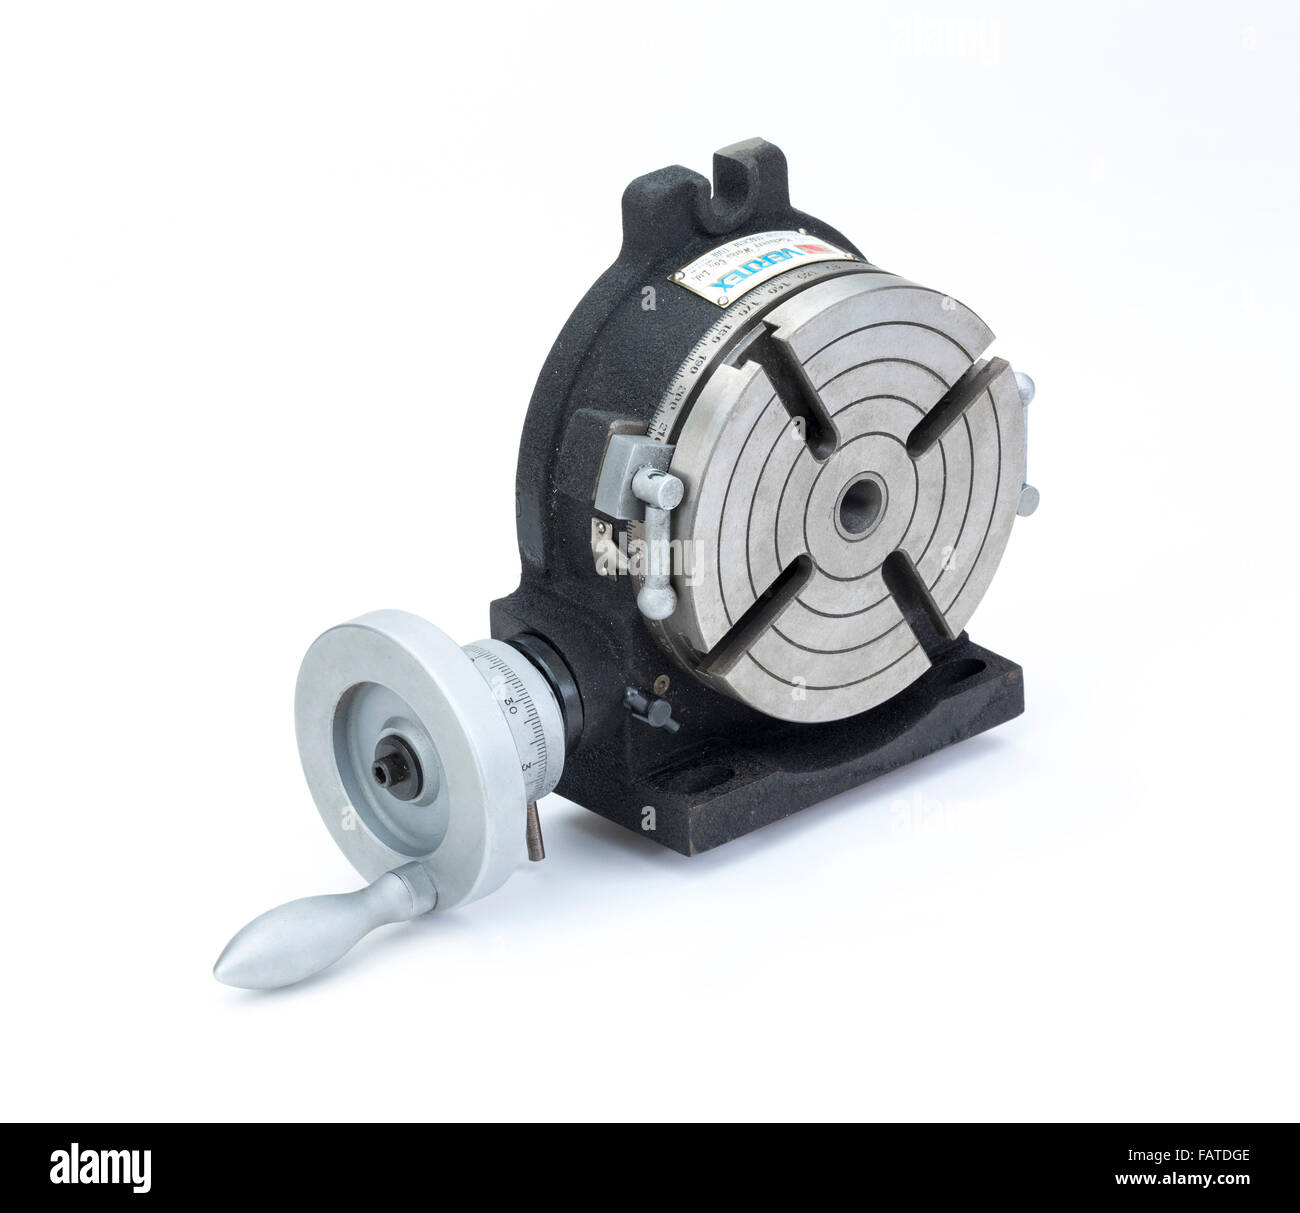 rotary table for machining and engineering applications - Stock Image